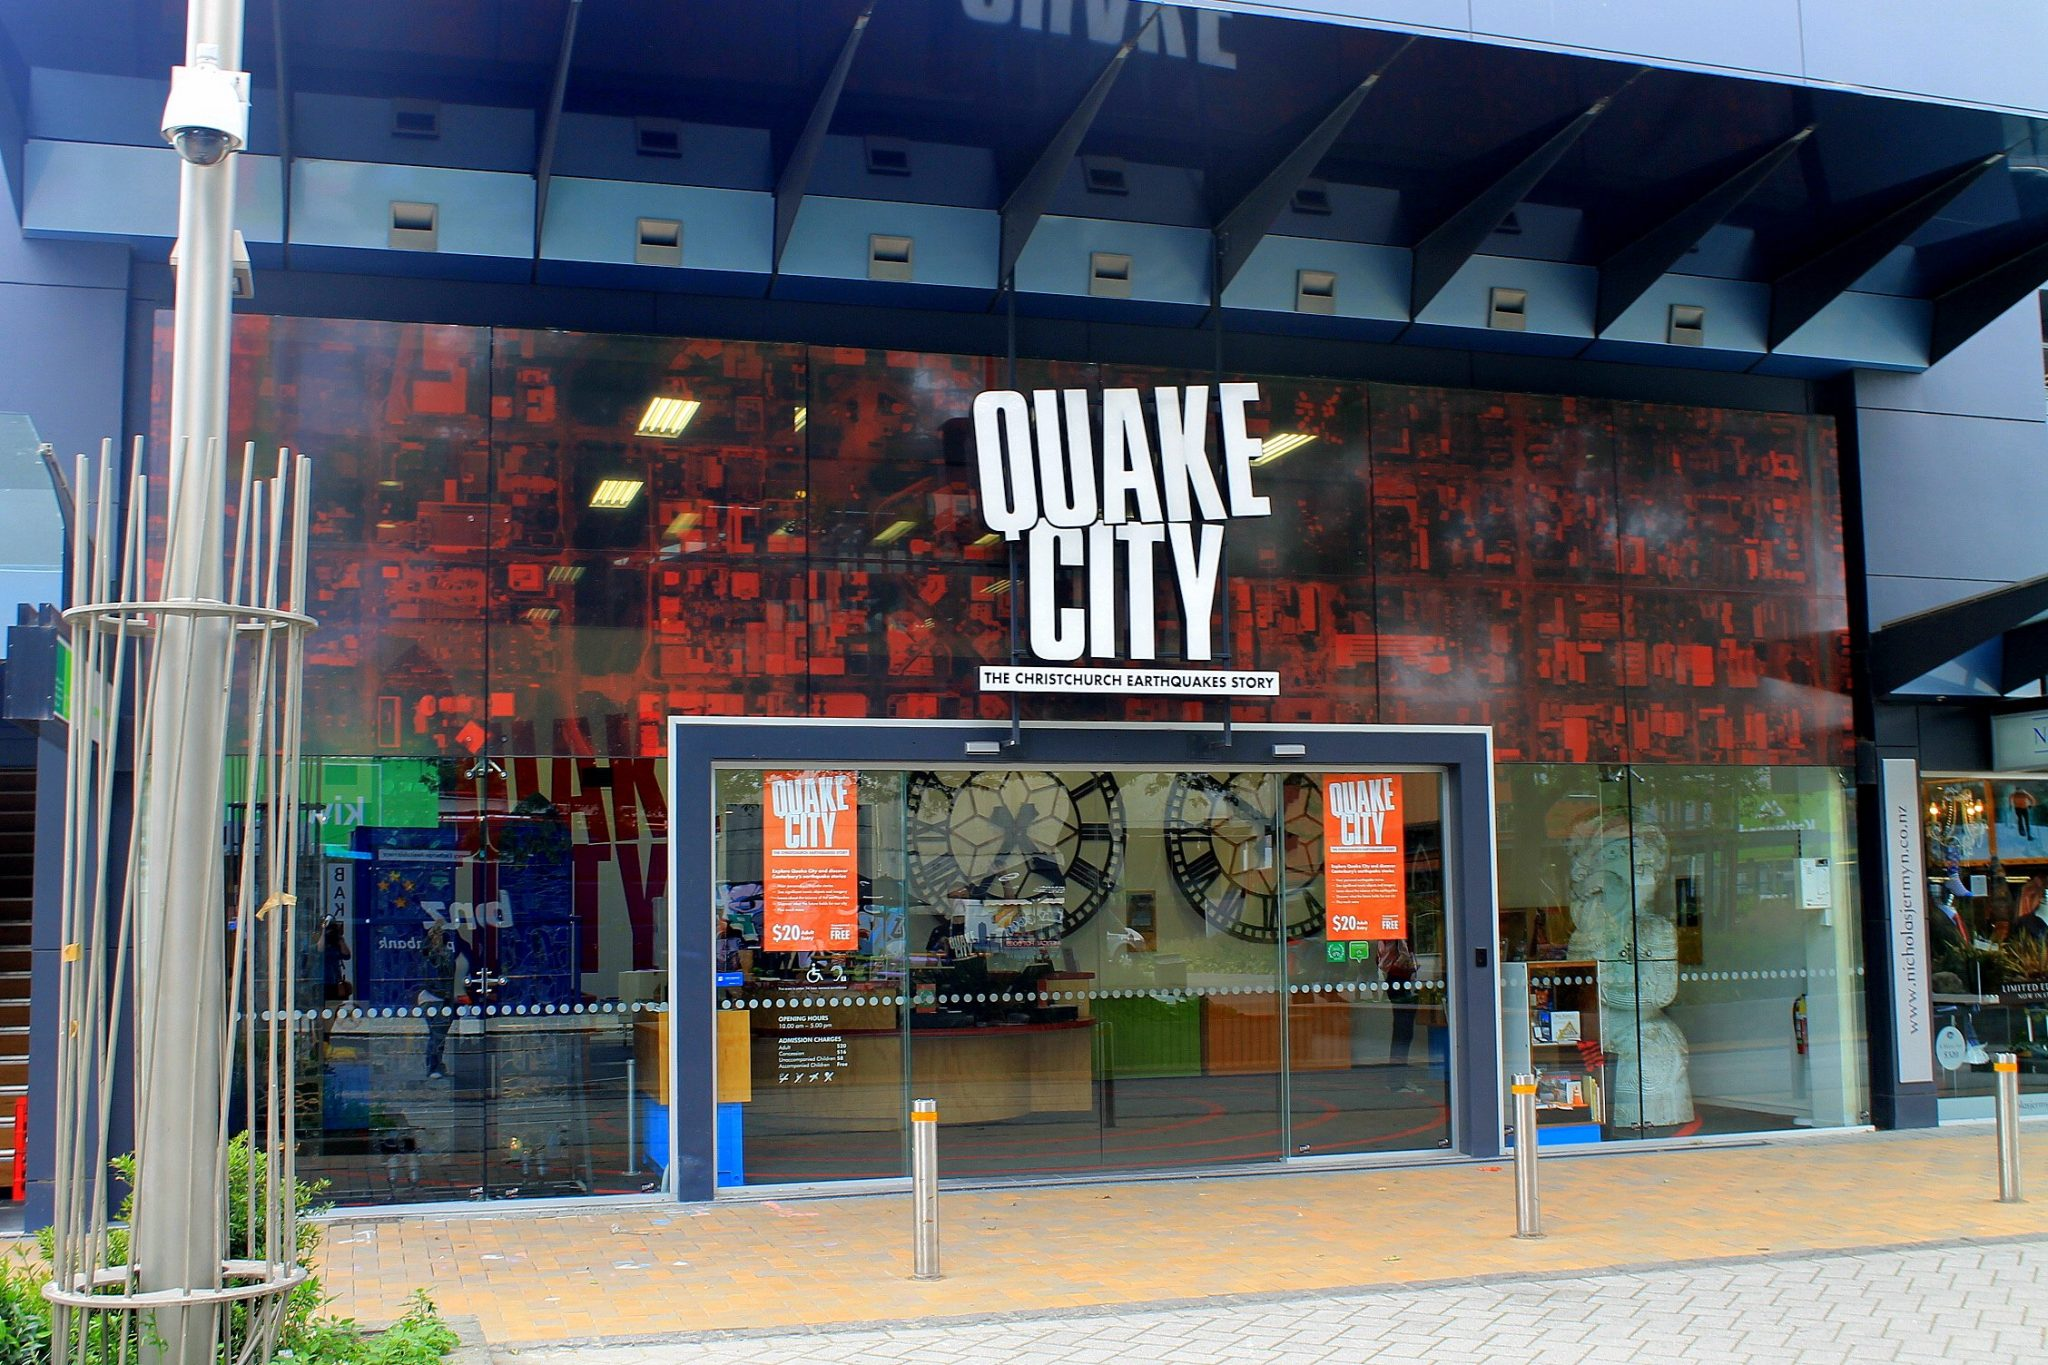 Quake City - Christchurch, New Zealand